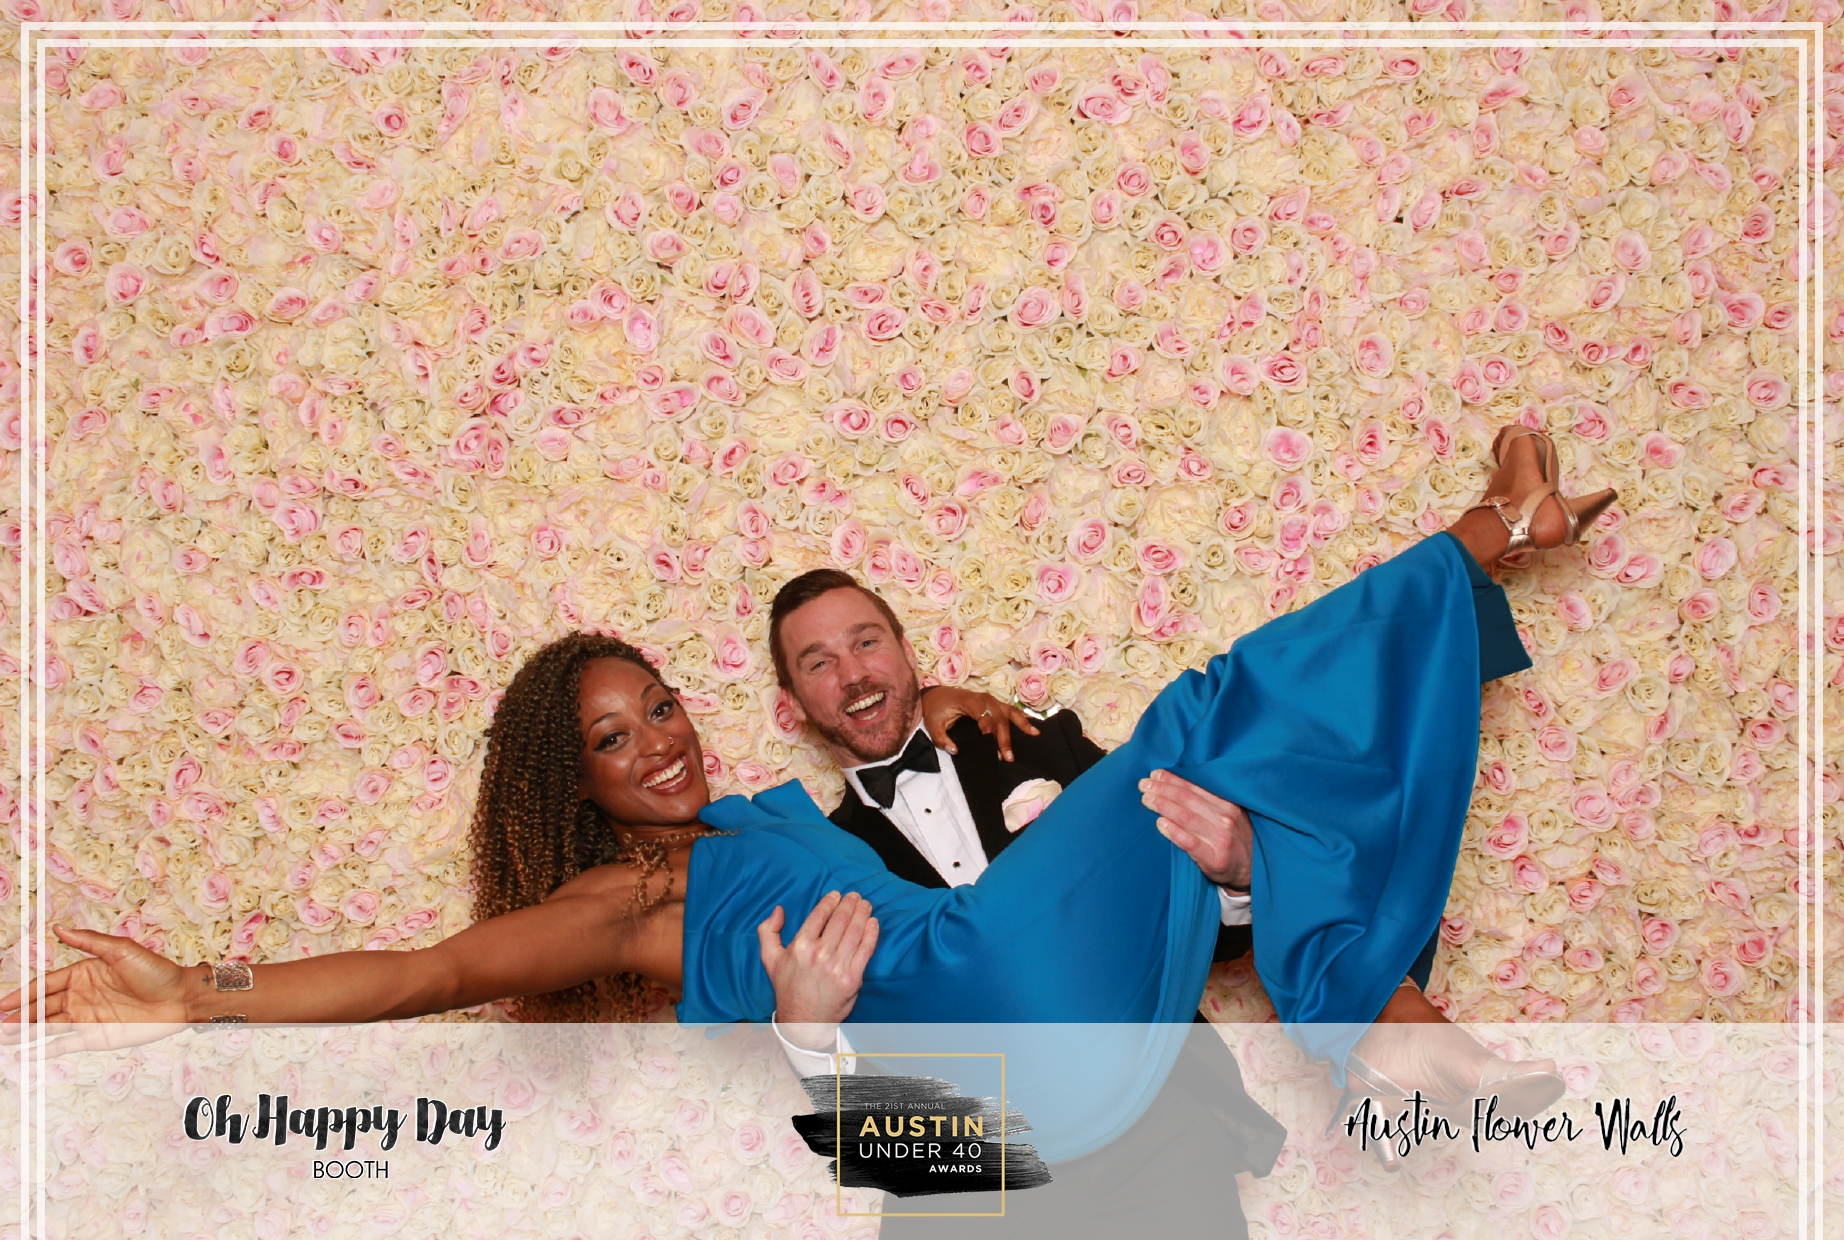 Oh Happy Day Booth - Austin Under 40-212.jpg